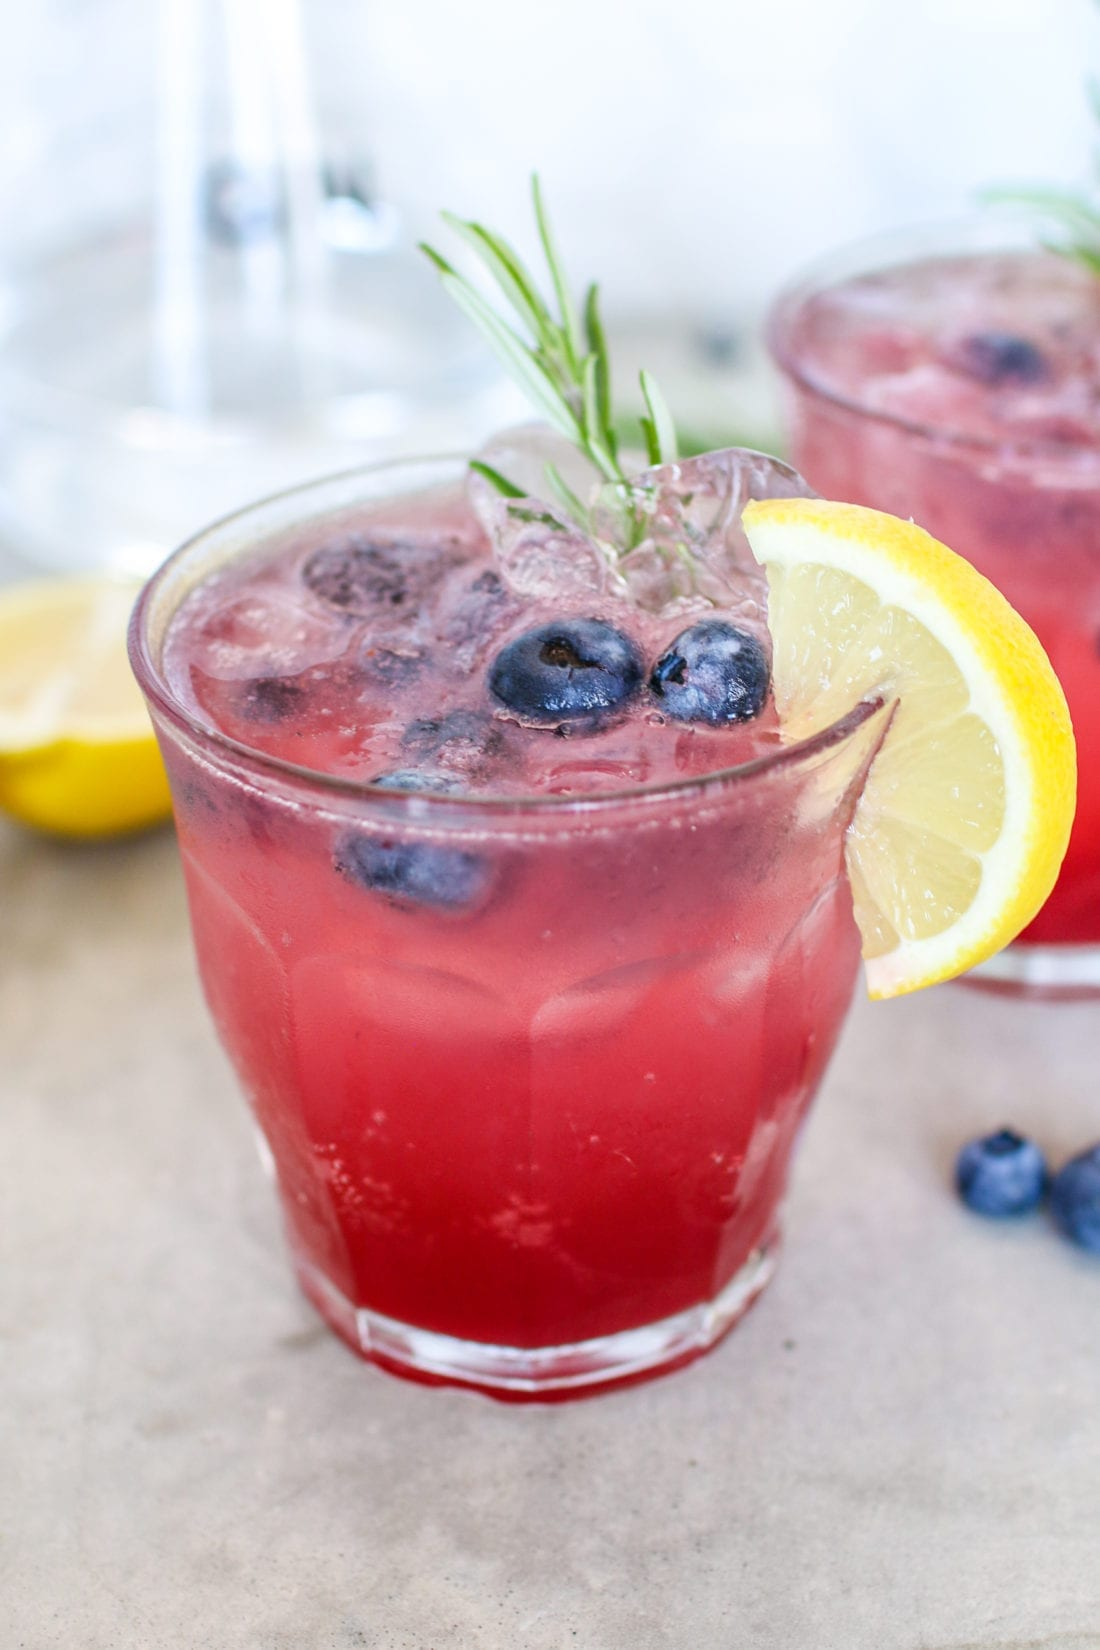 This refreshing cocktail packed full of fresh berries, fragrant rosemary and gin is the perfect summertime drink for your next dinner party and BBQ feast!